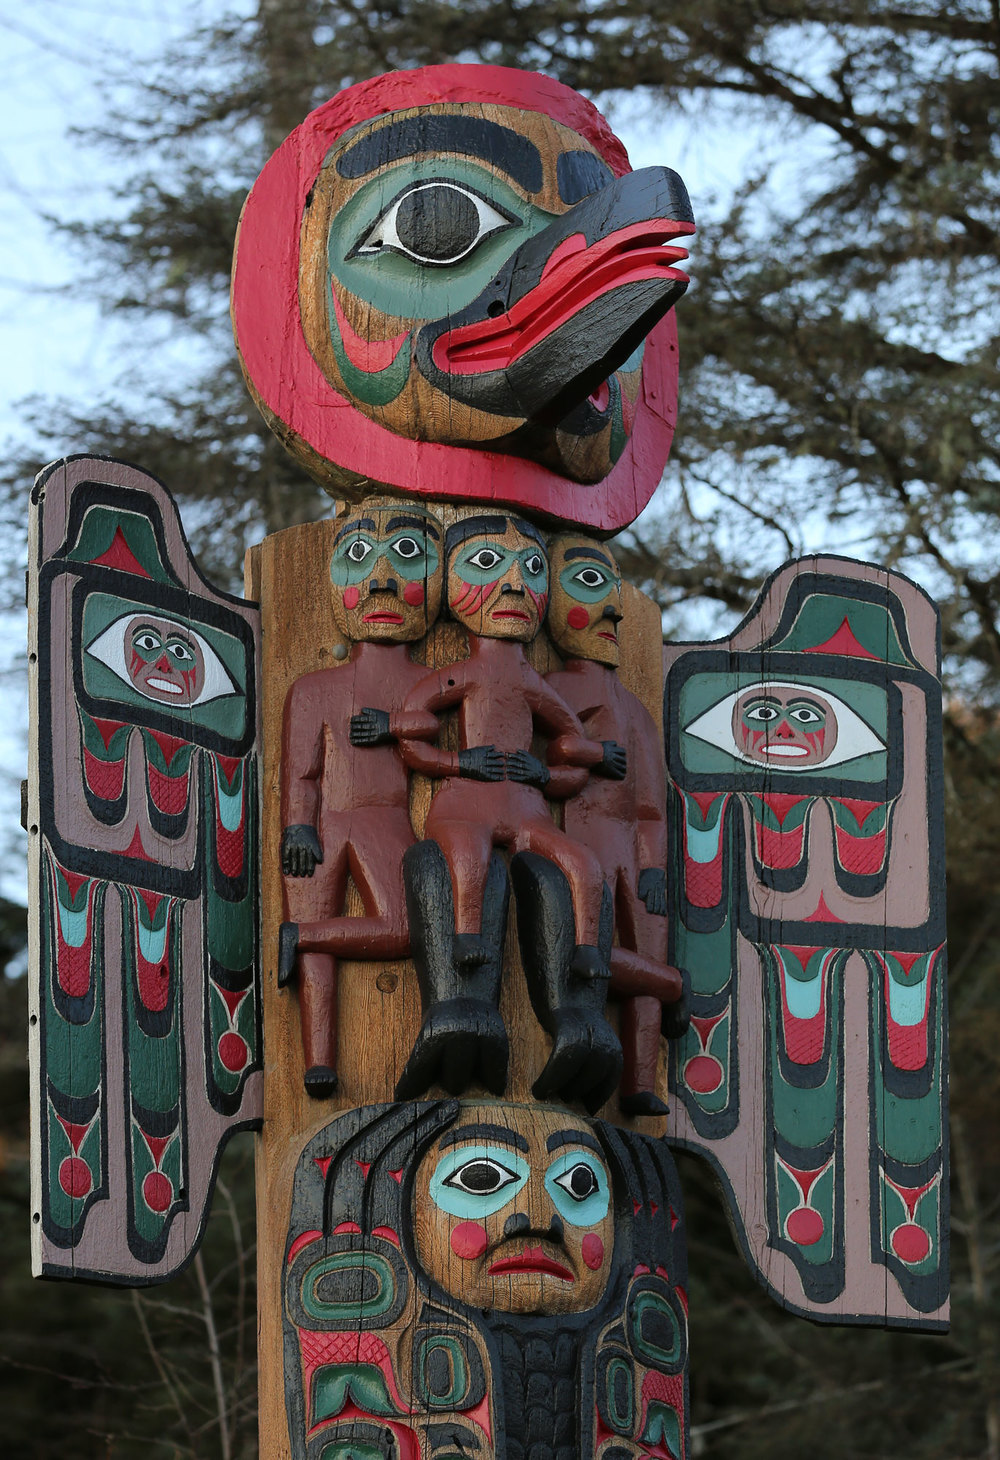 Totem pole Saxman Alaska Native Village